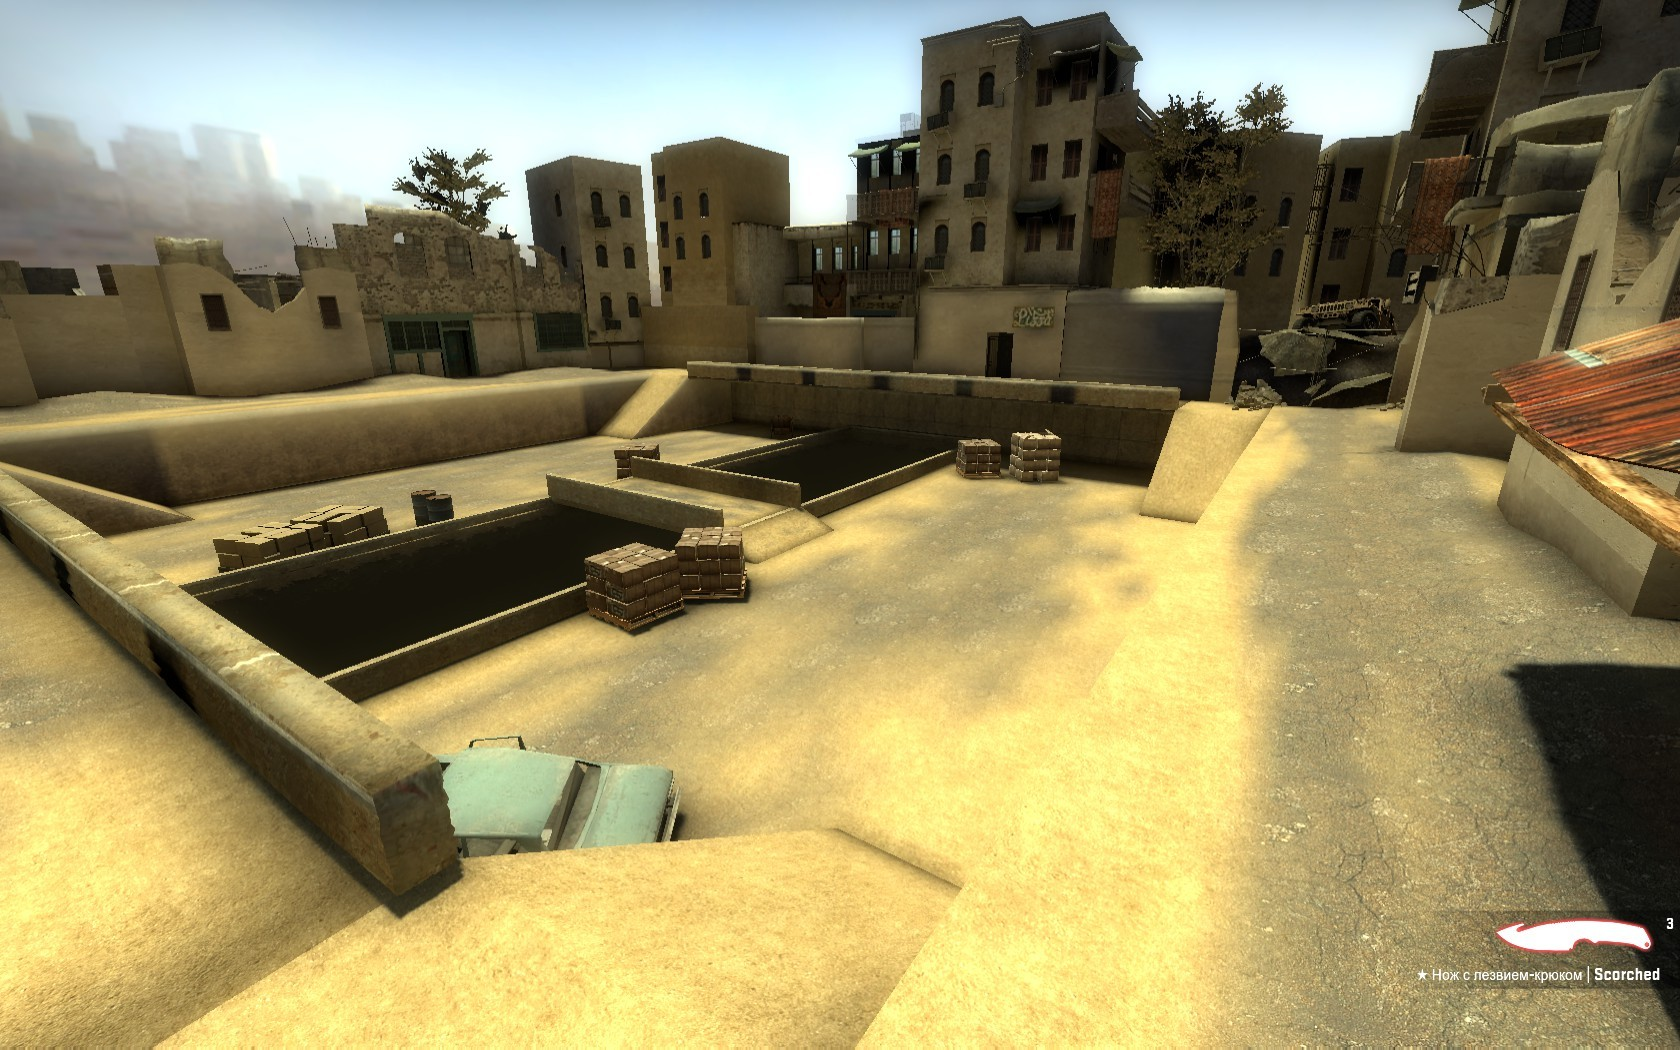 Скачать картa  35hp Iraq для Counter-Strike: Global Offensive бесплатно